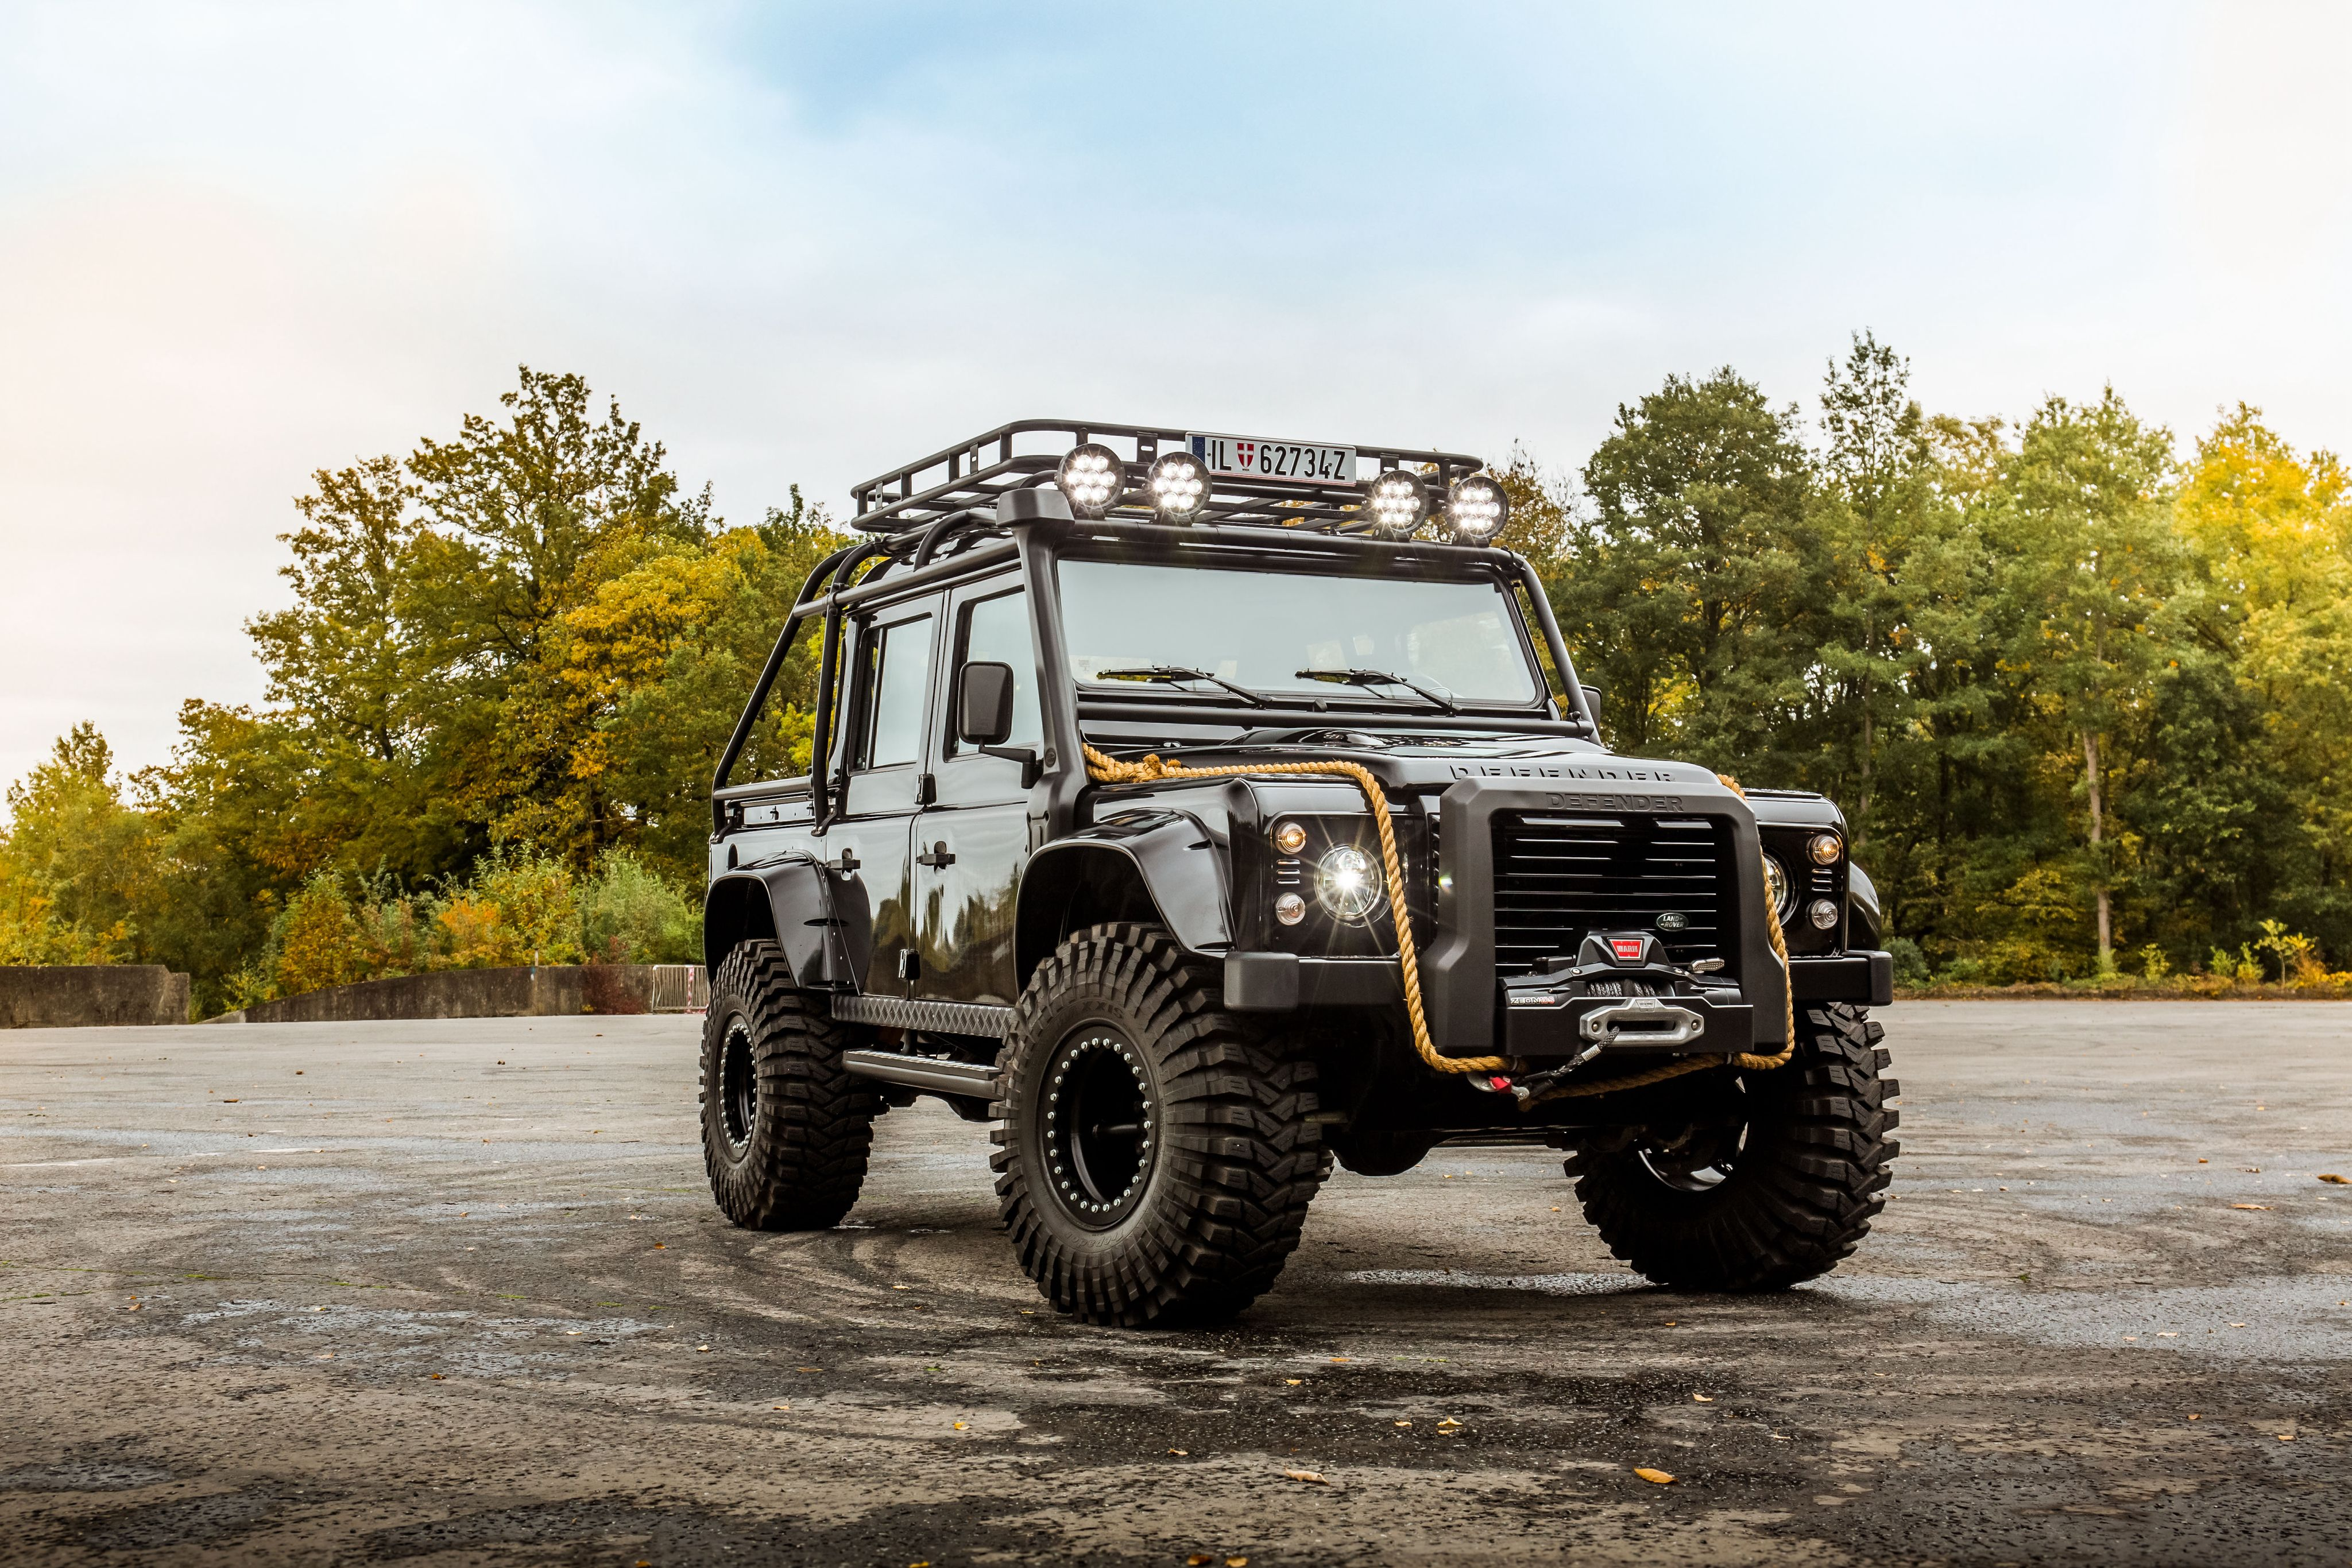 """Land Rover Defender 110 """"007 Spectre"""" '2015 Land Rovers"""